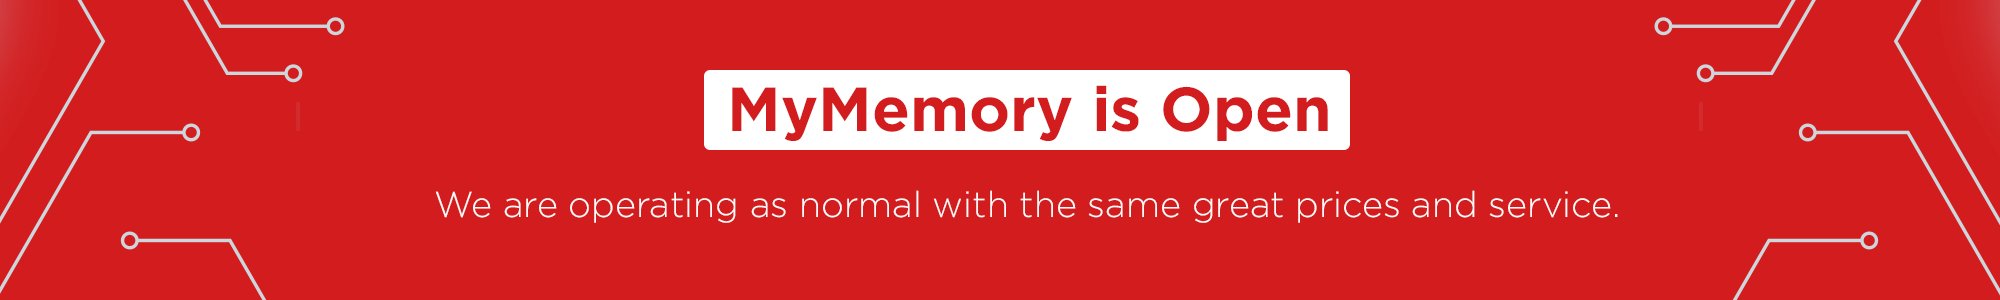 MyMemory is open. We are operating as normal with the same great prices and service.